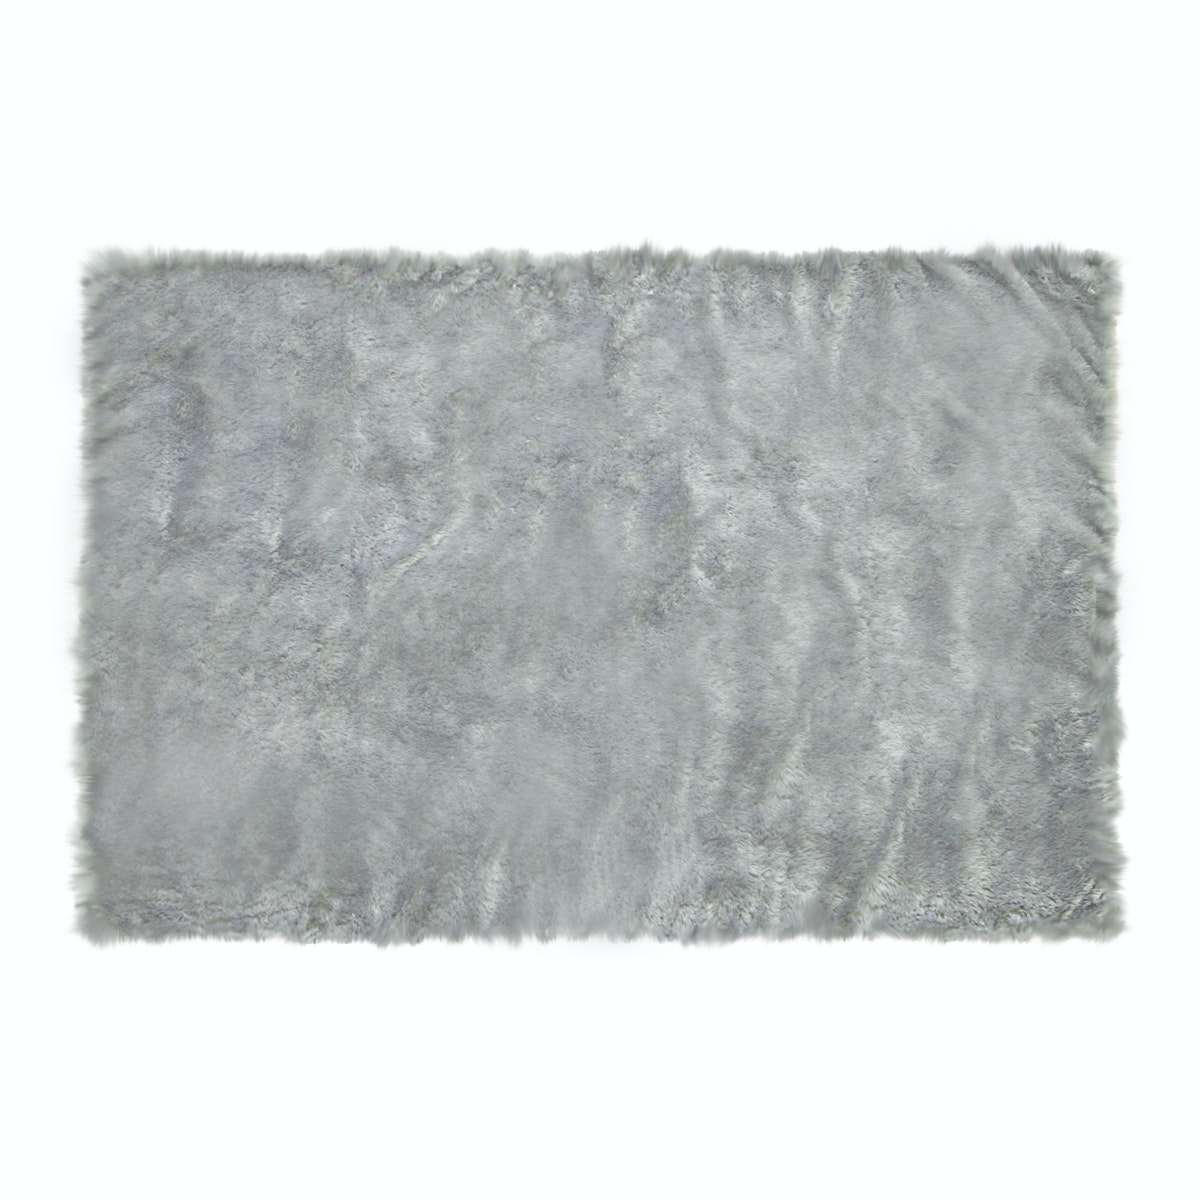 Glerry Home Decor Square Grey Fur Rug 200 x 150 cm